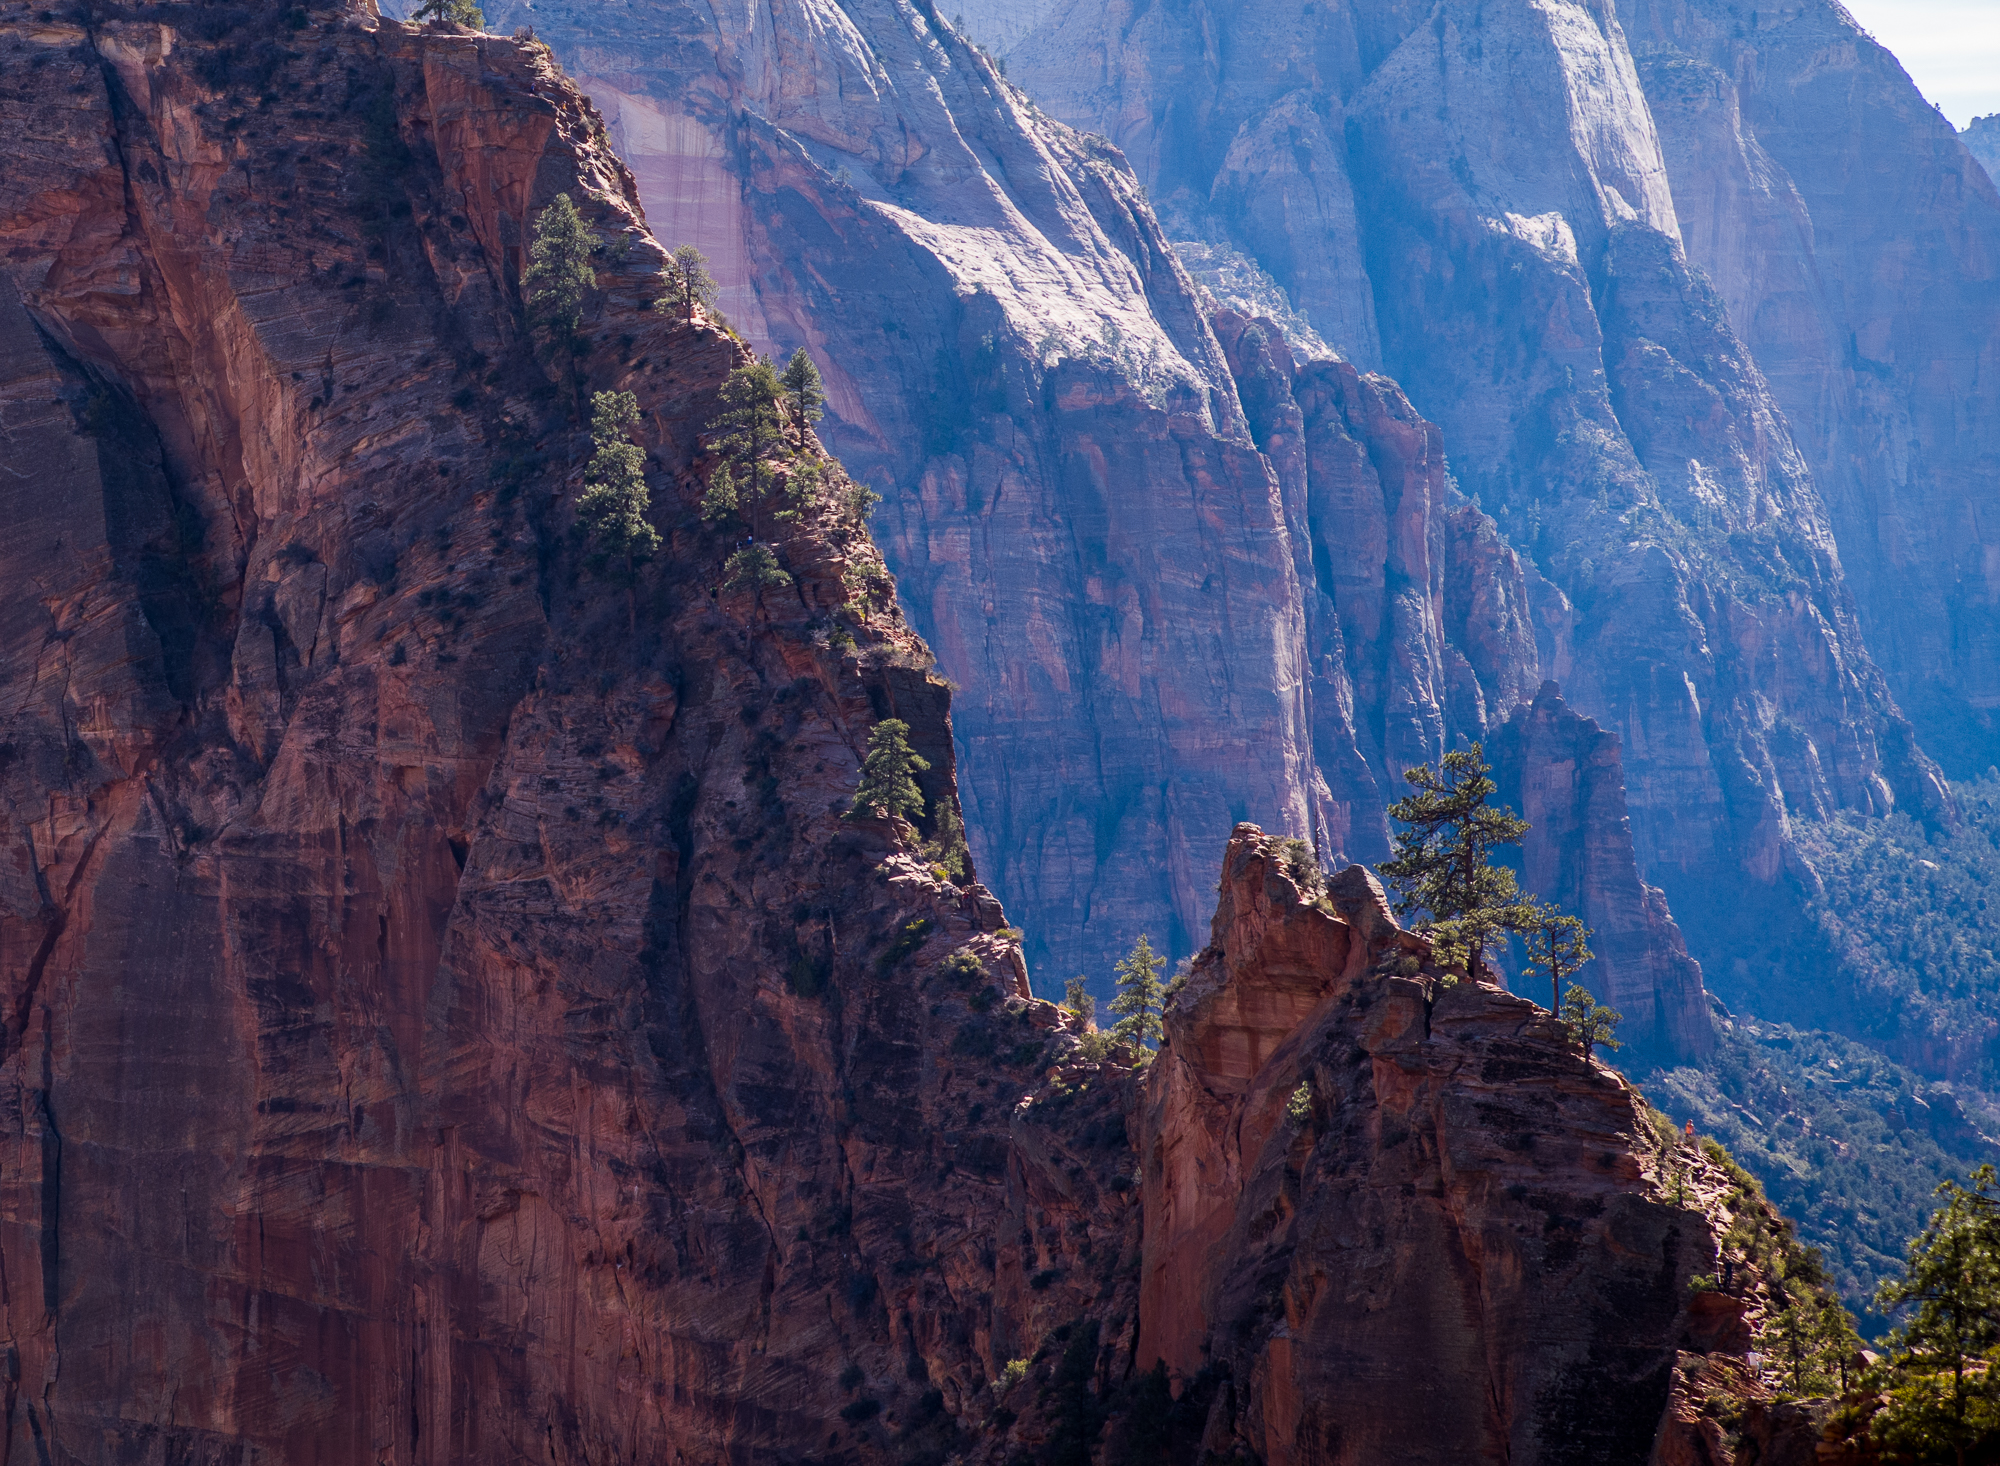 The exciting part of Angels Landing trail - lower right to upper left along the ridge line